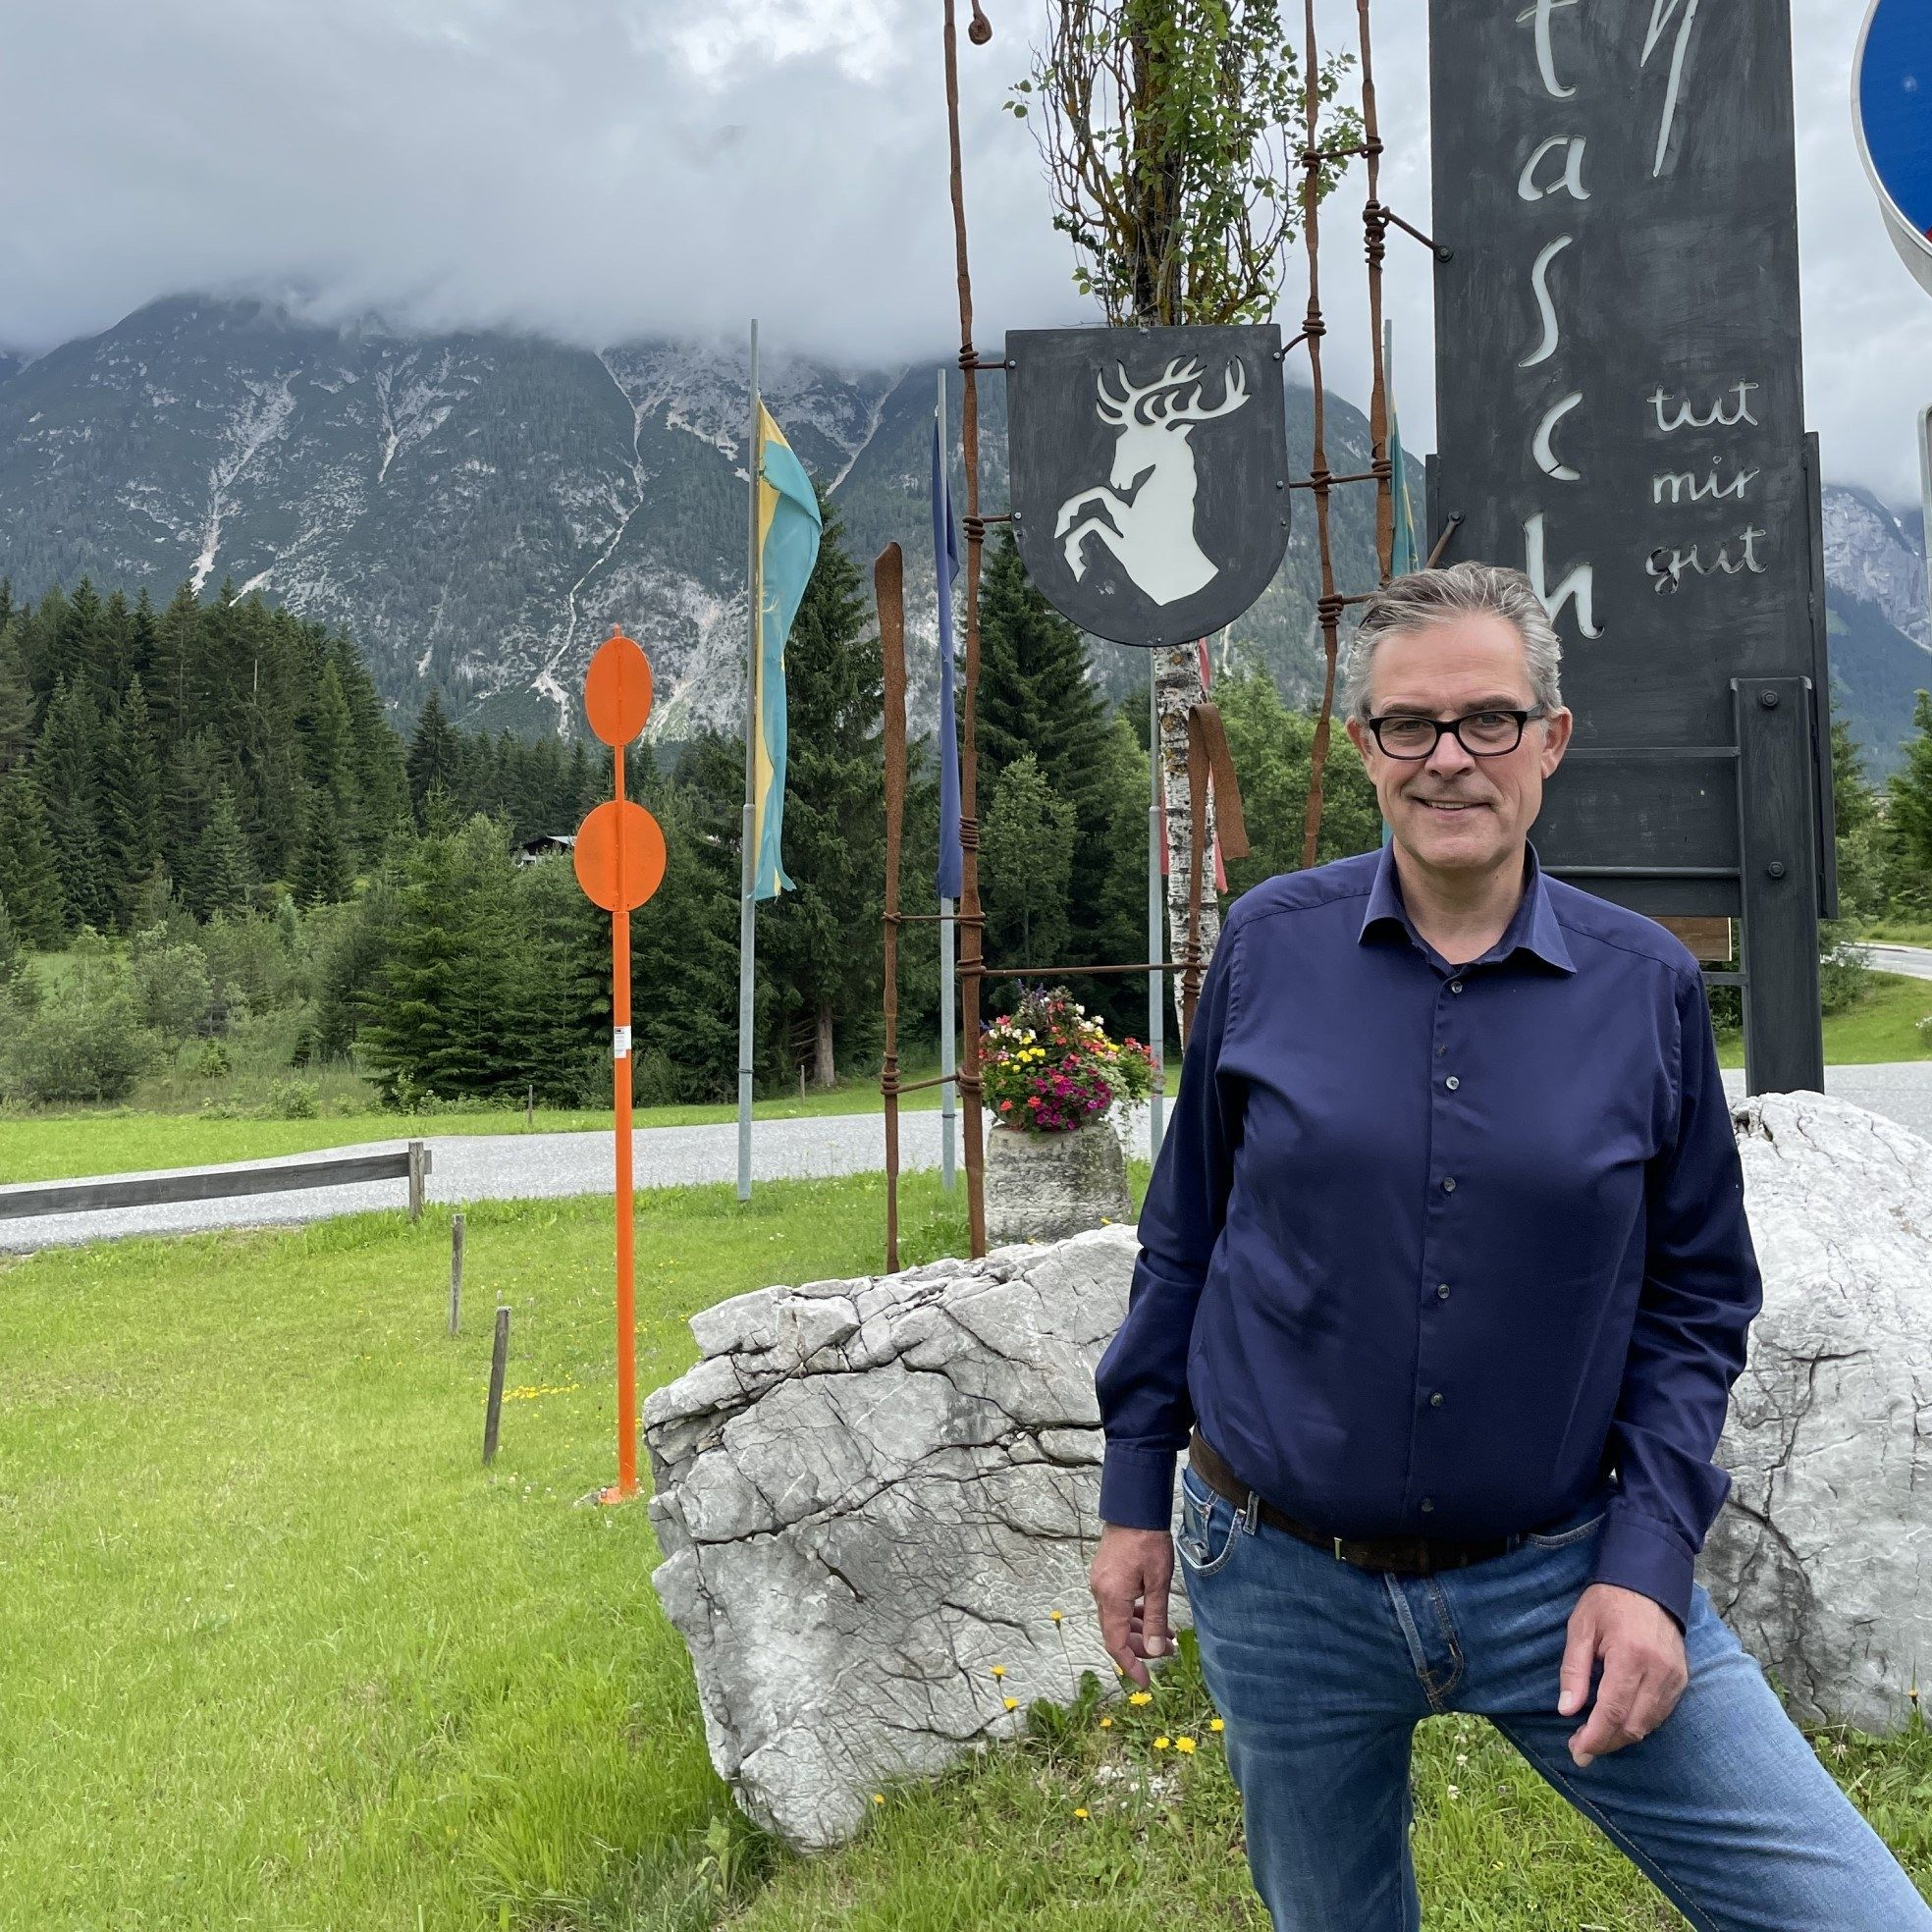 Andries ceo europarks